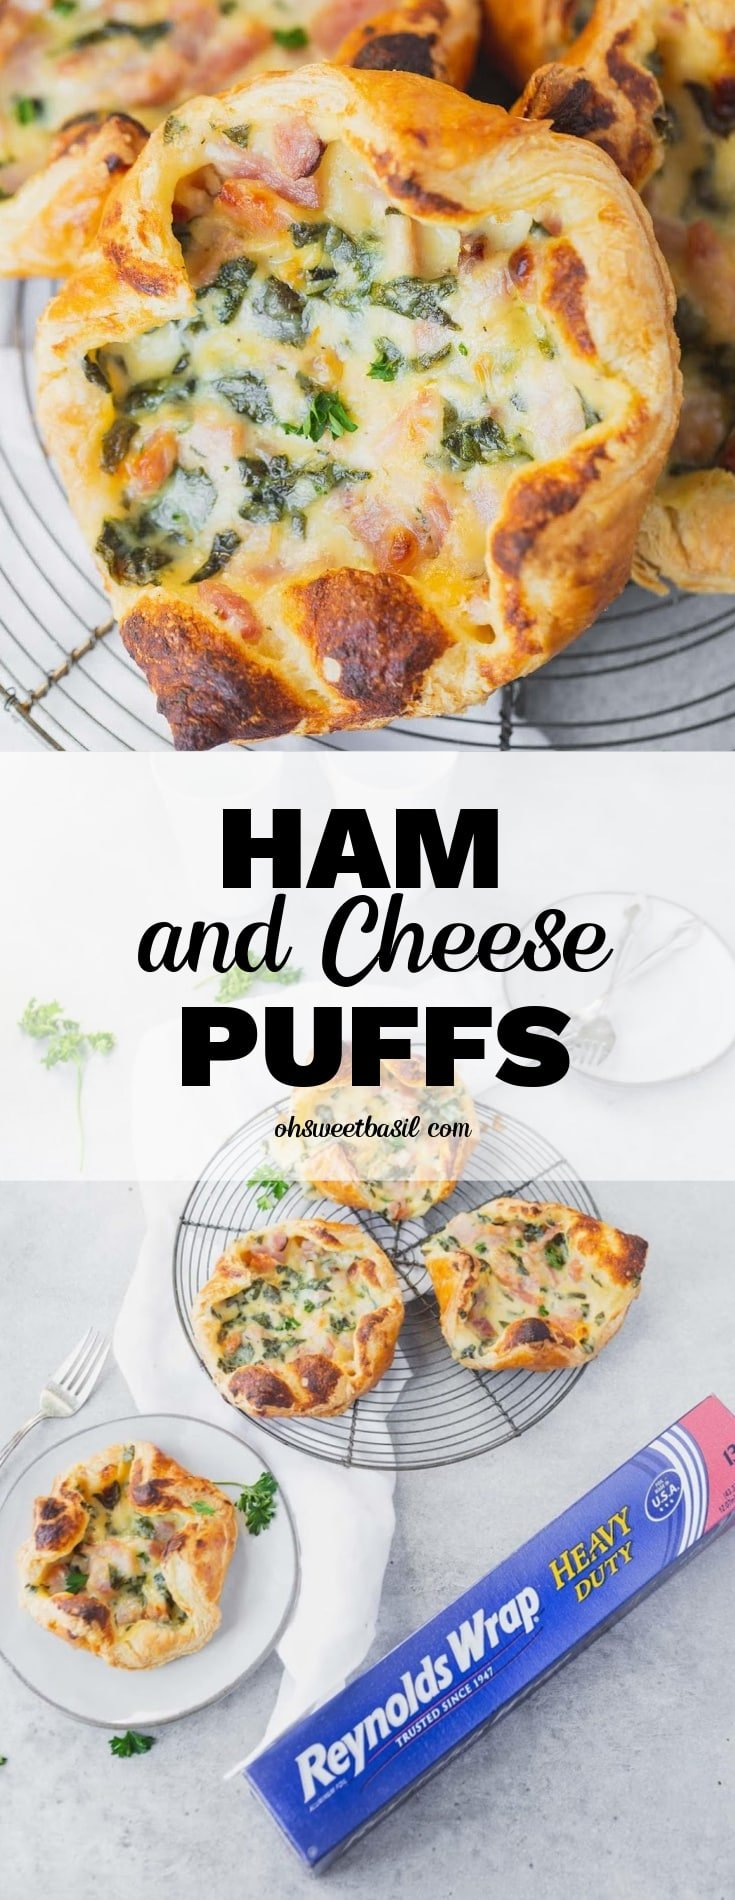 a photo of three ham and cheese puffs on a circular cooling rack and one ham and cheese puff on a white plate all sitting next to a box of Reyolds Wrap Heavy Duty foil